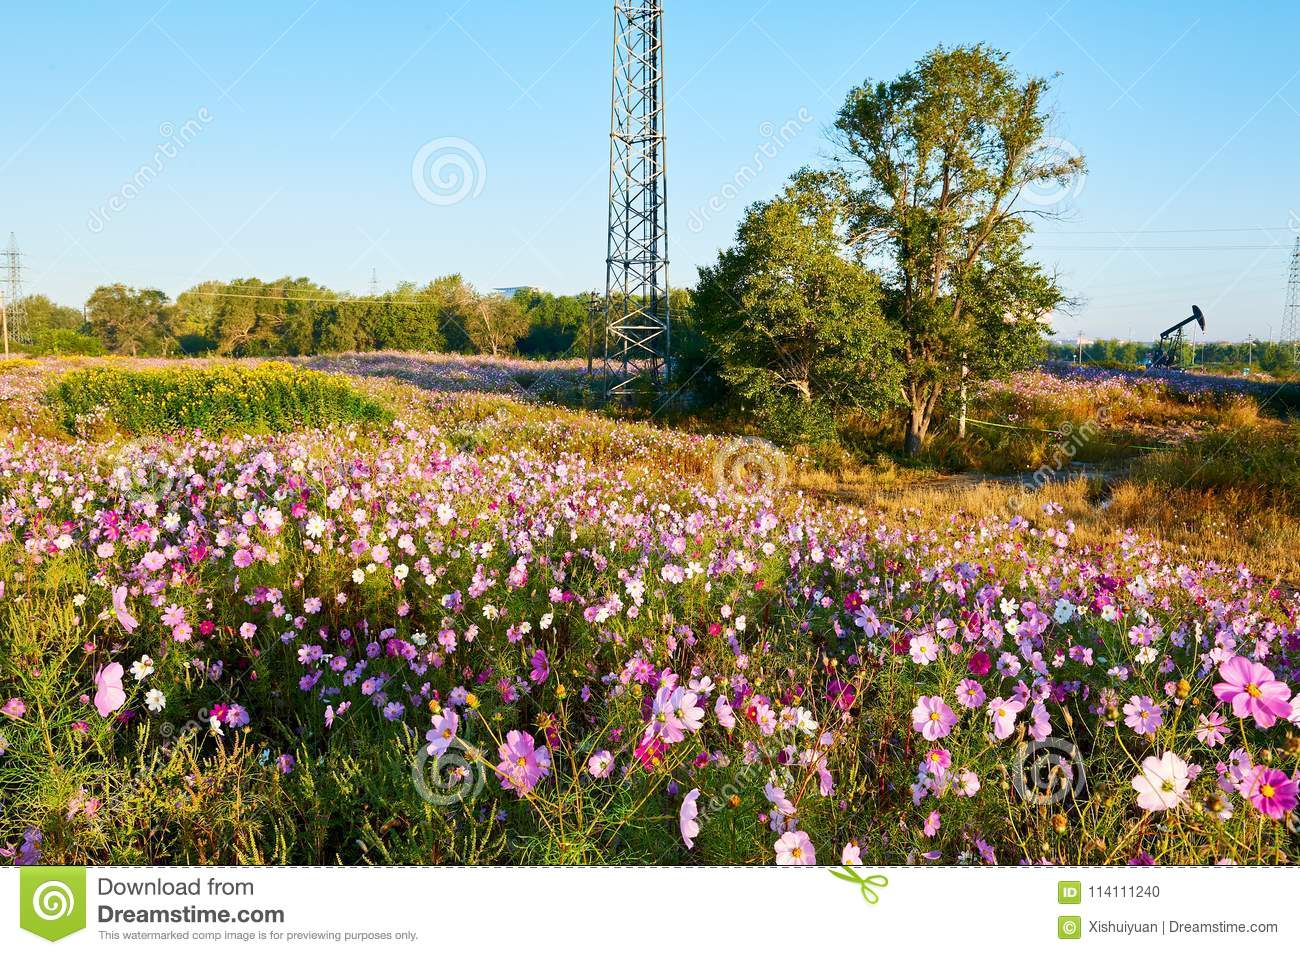 The Coreopsis Flowers And Trees On The Hillside Stock Photo - Image ...